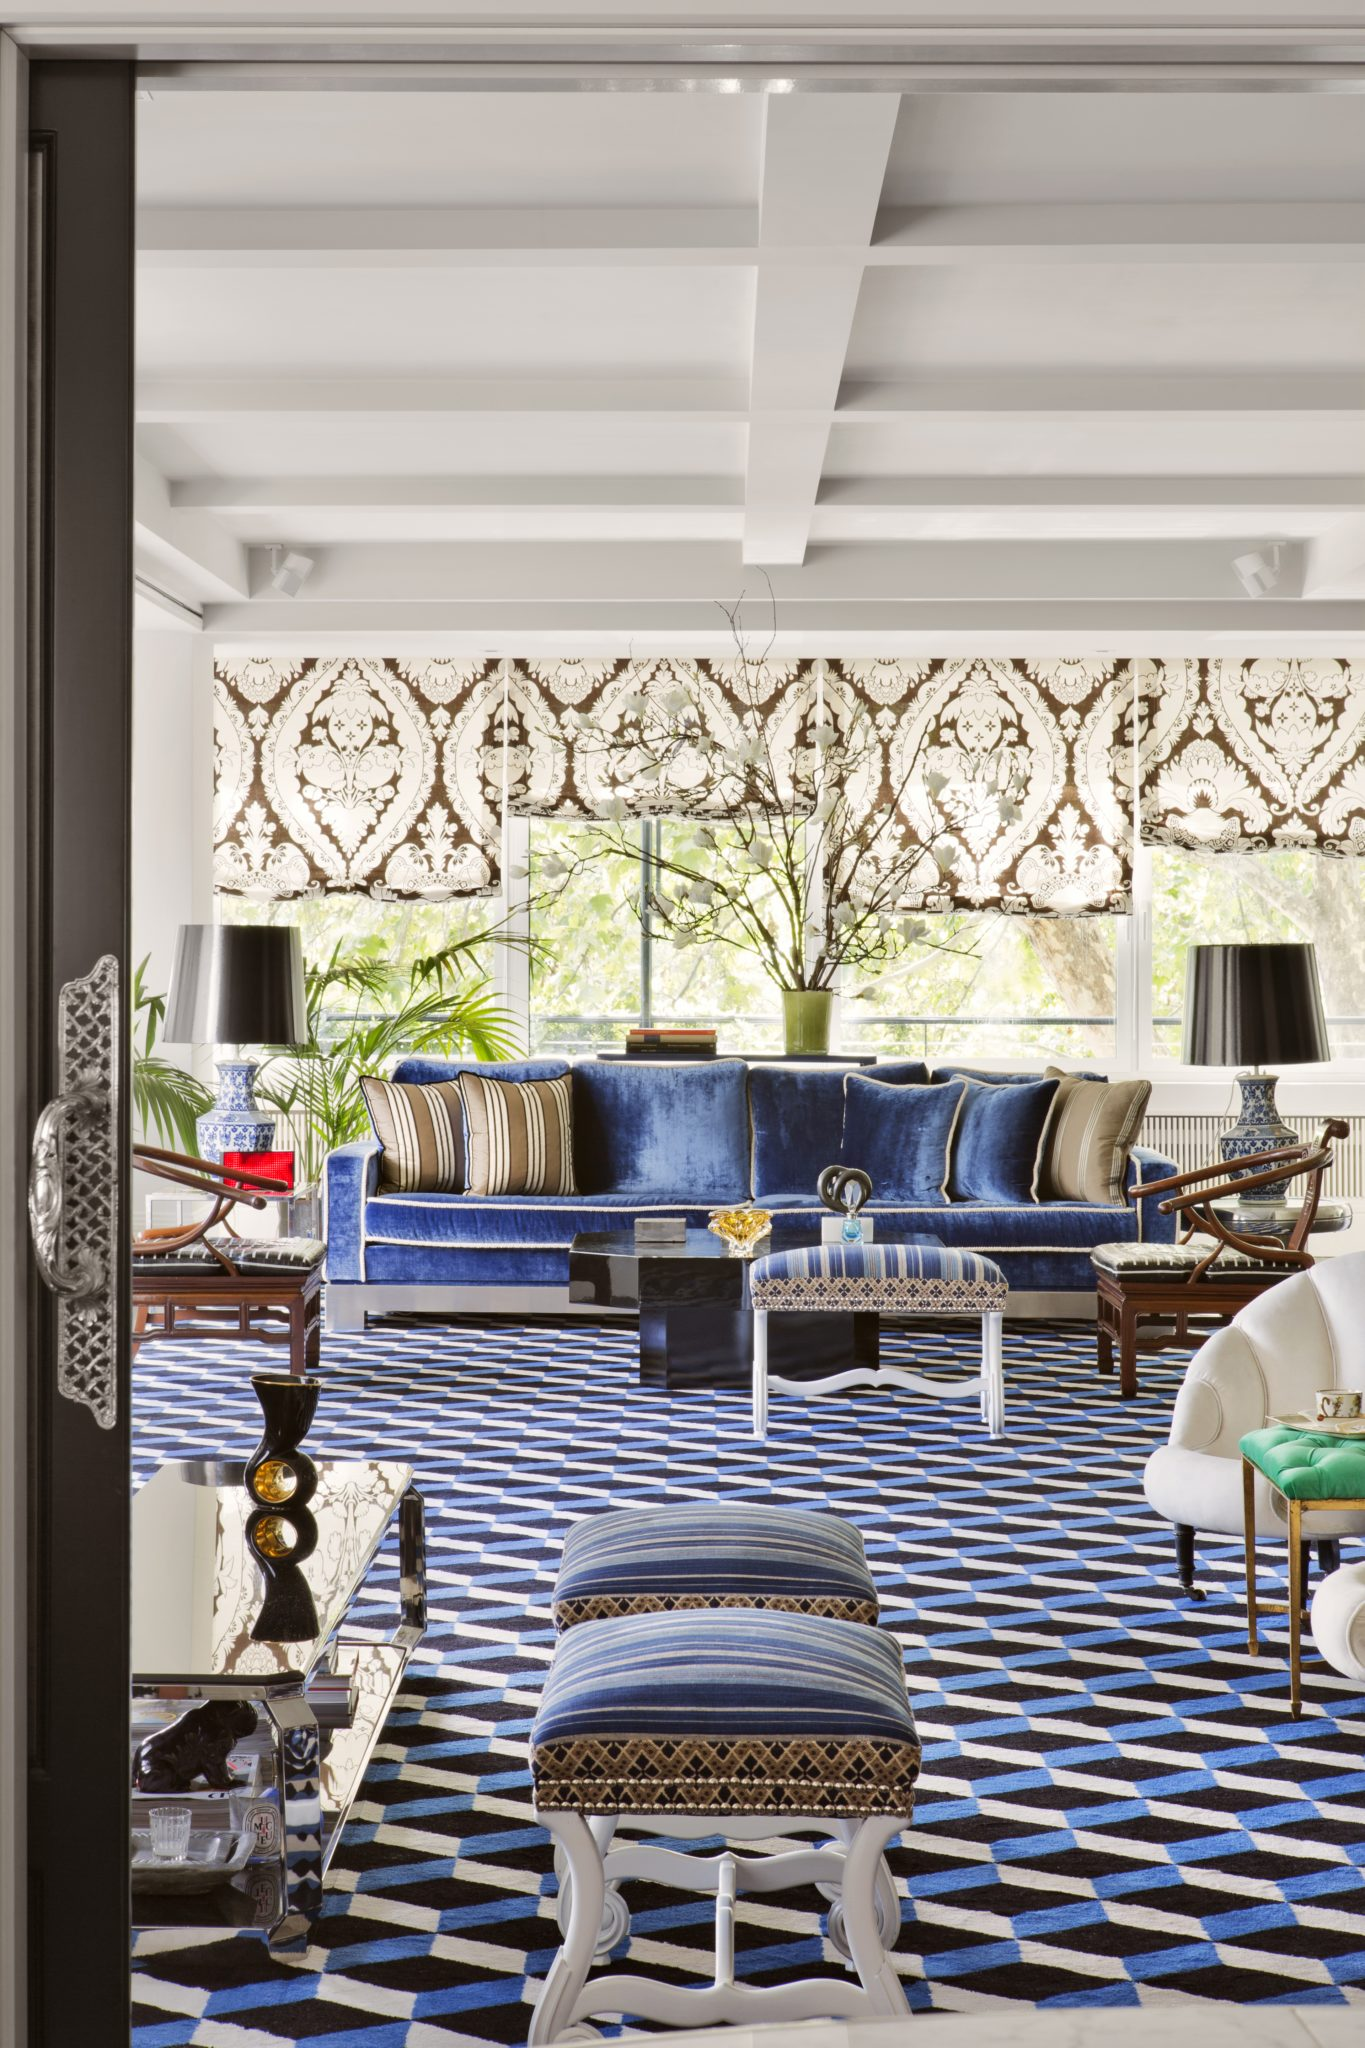 Eclectic living room with plush seating and geometric floors by Lorenzo Castillo